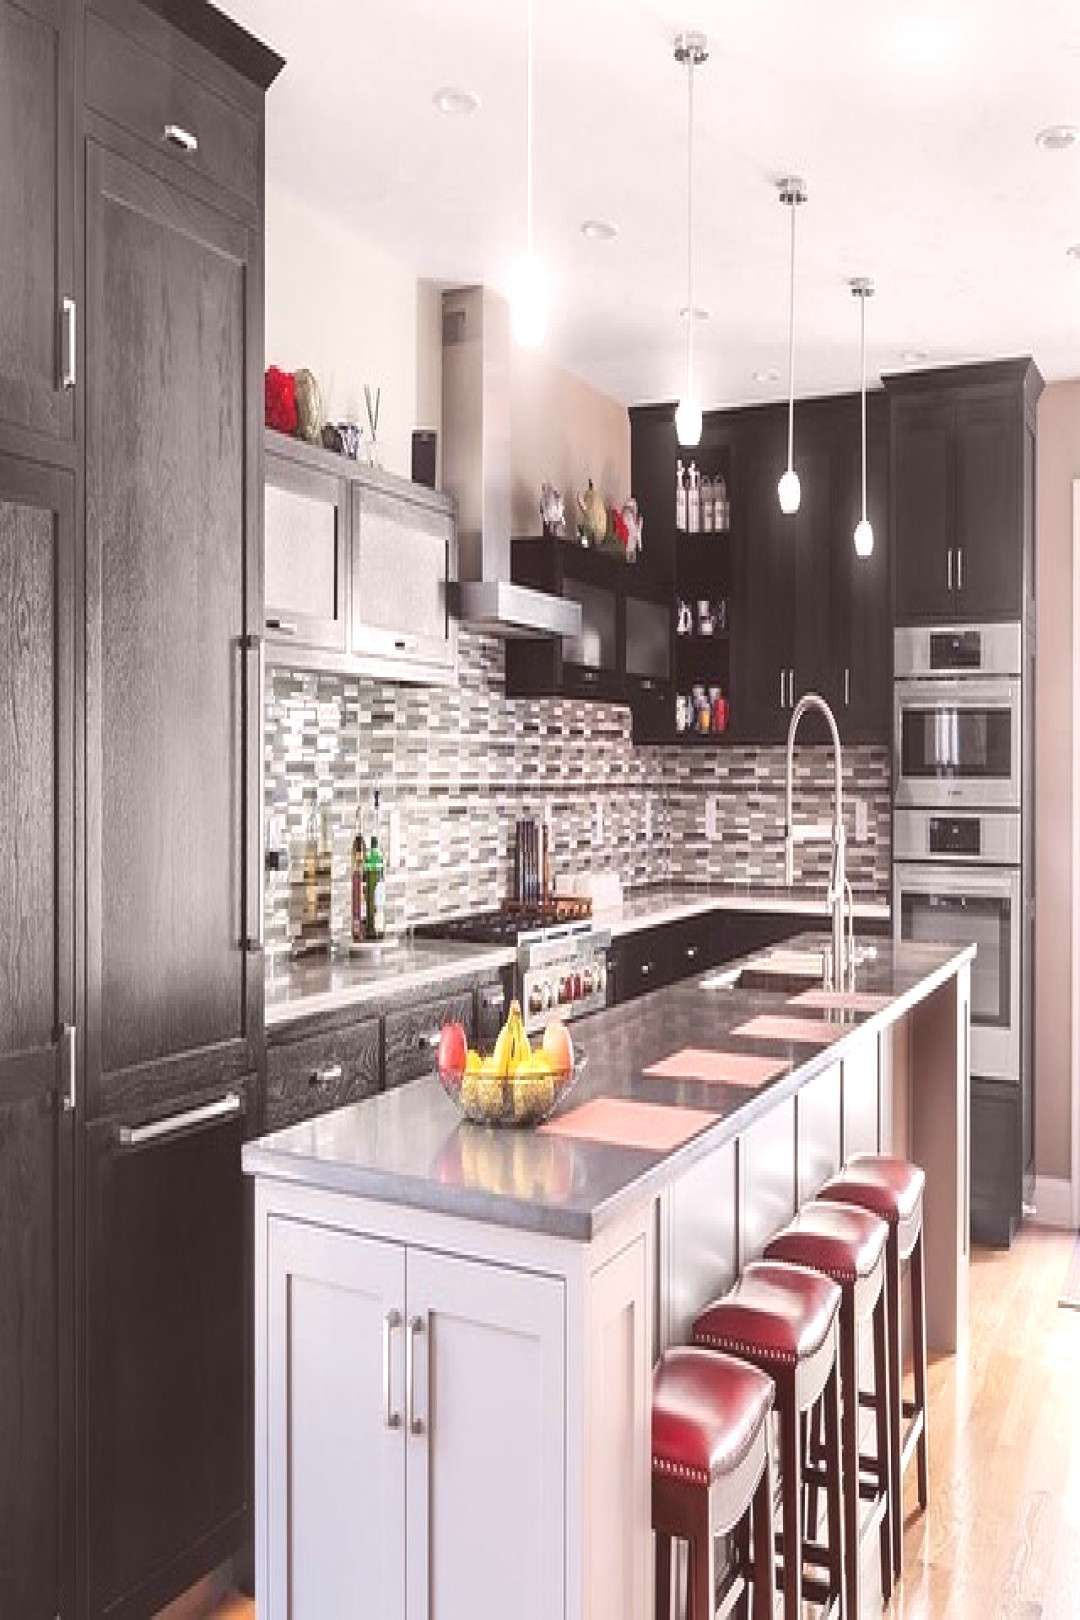 Looking to renovate your home in the near future For when you stYou can find Remodeling on a budget and more o